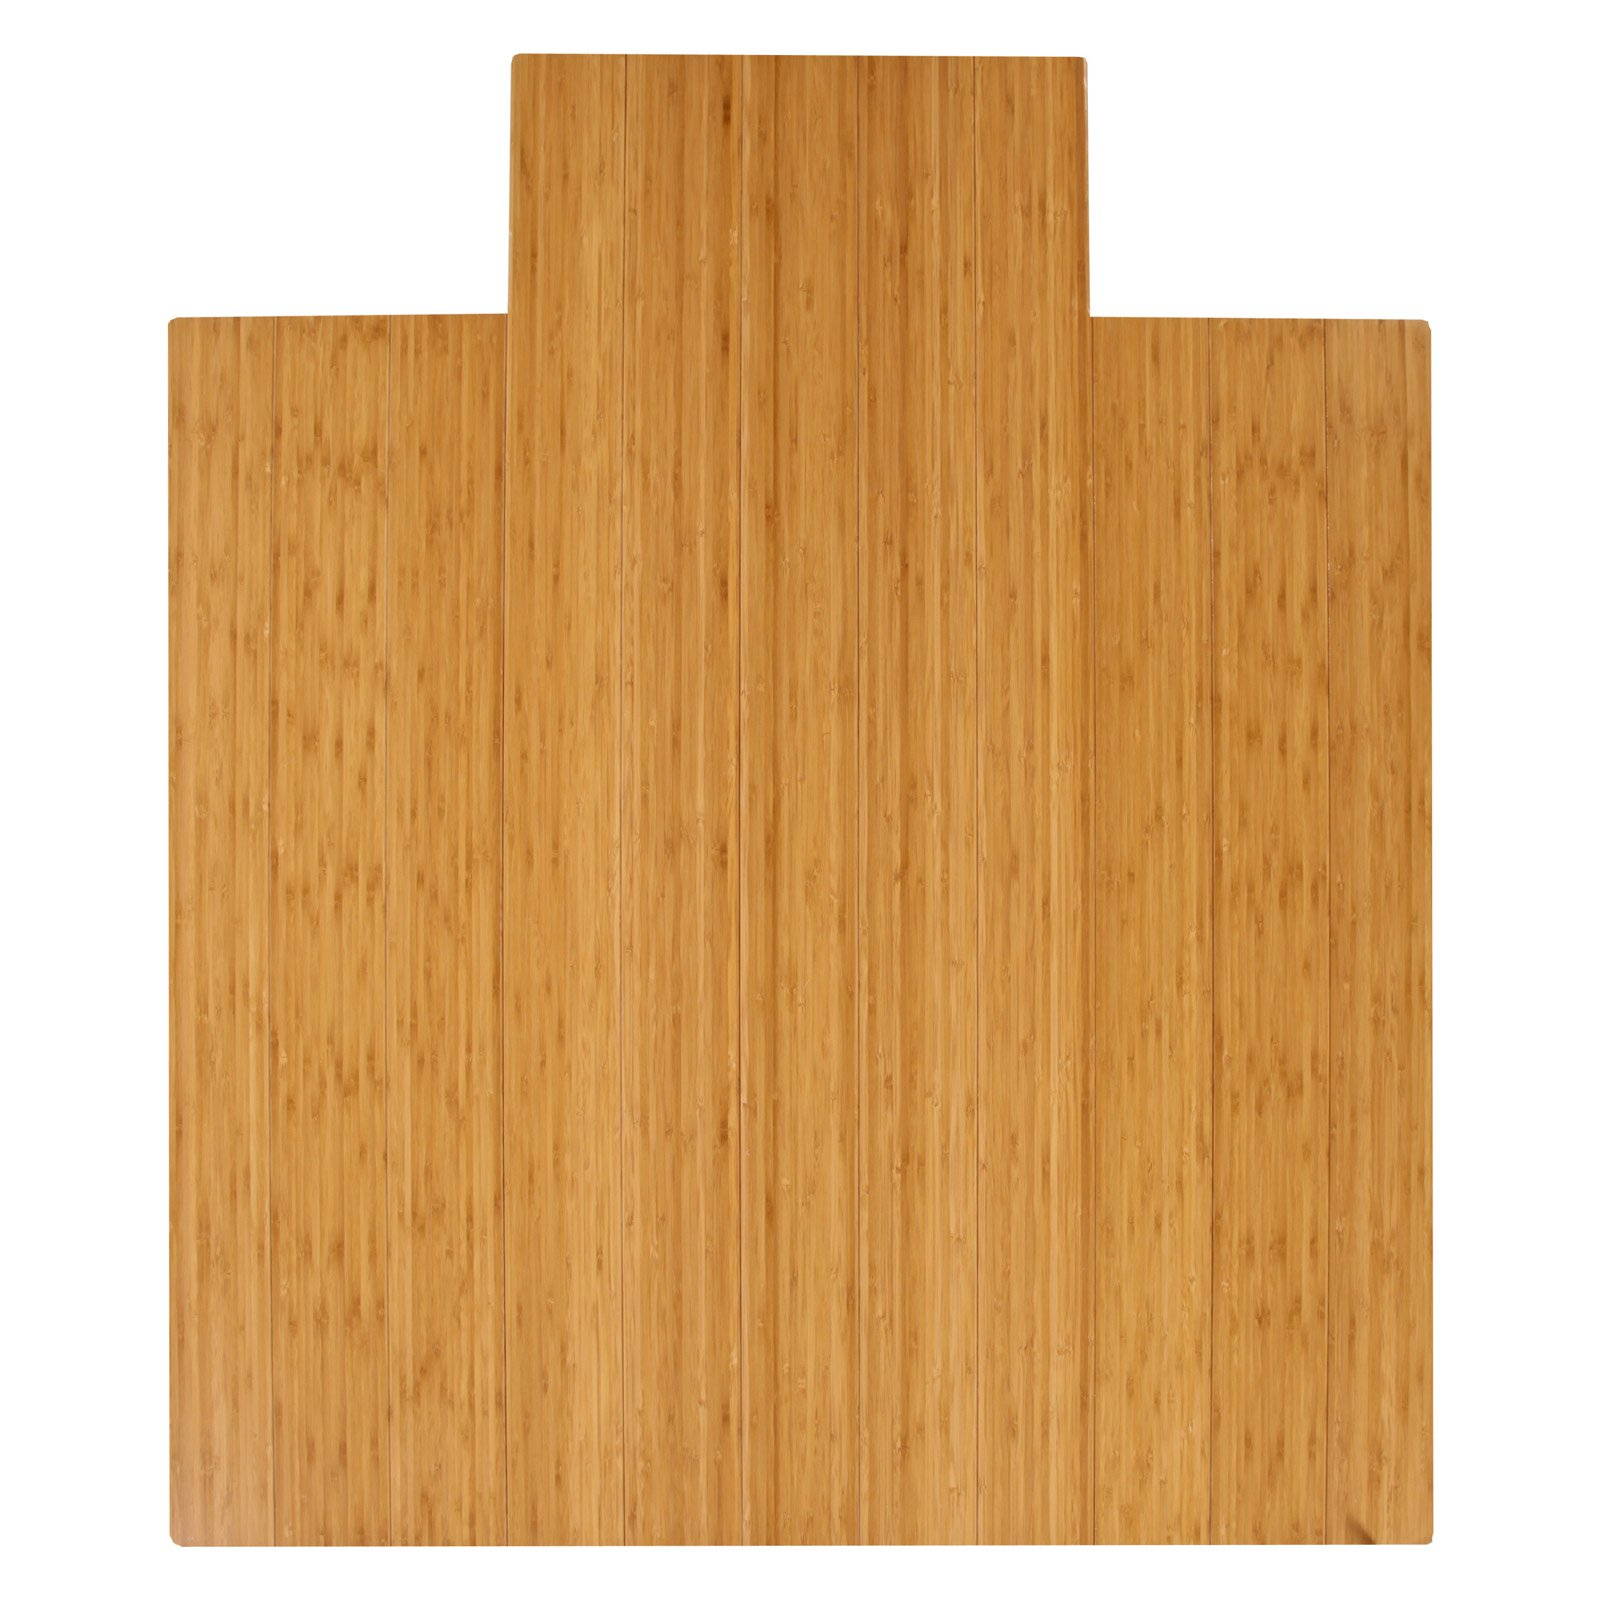 Anji Mountain Bamboo Deluxe 8mm Chairmat in Natural